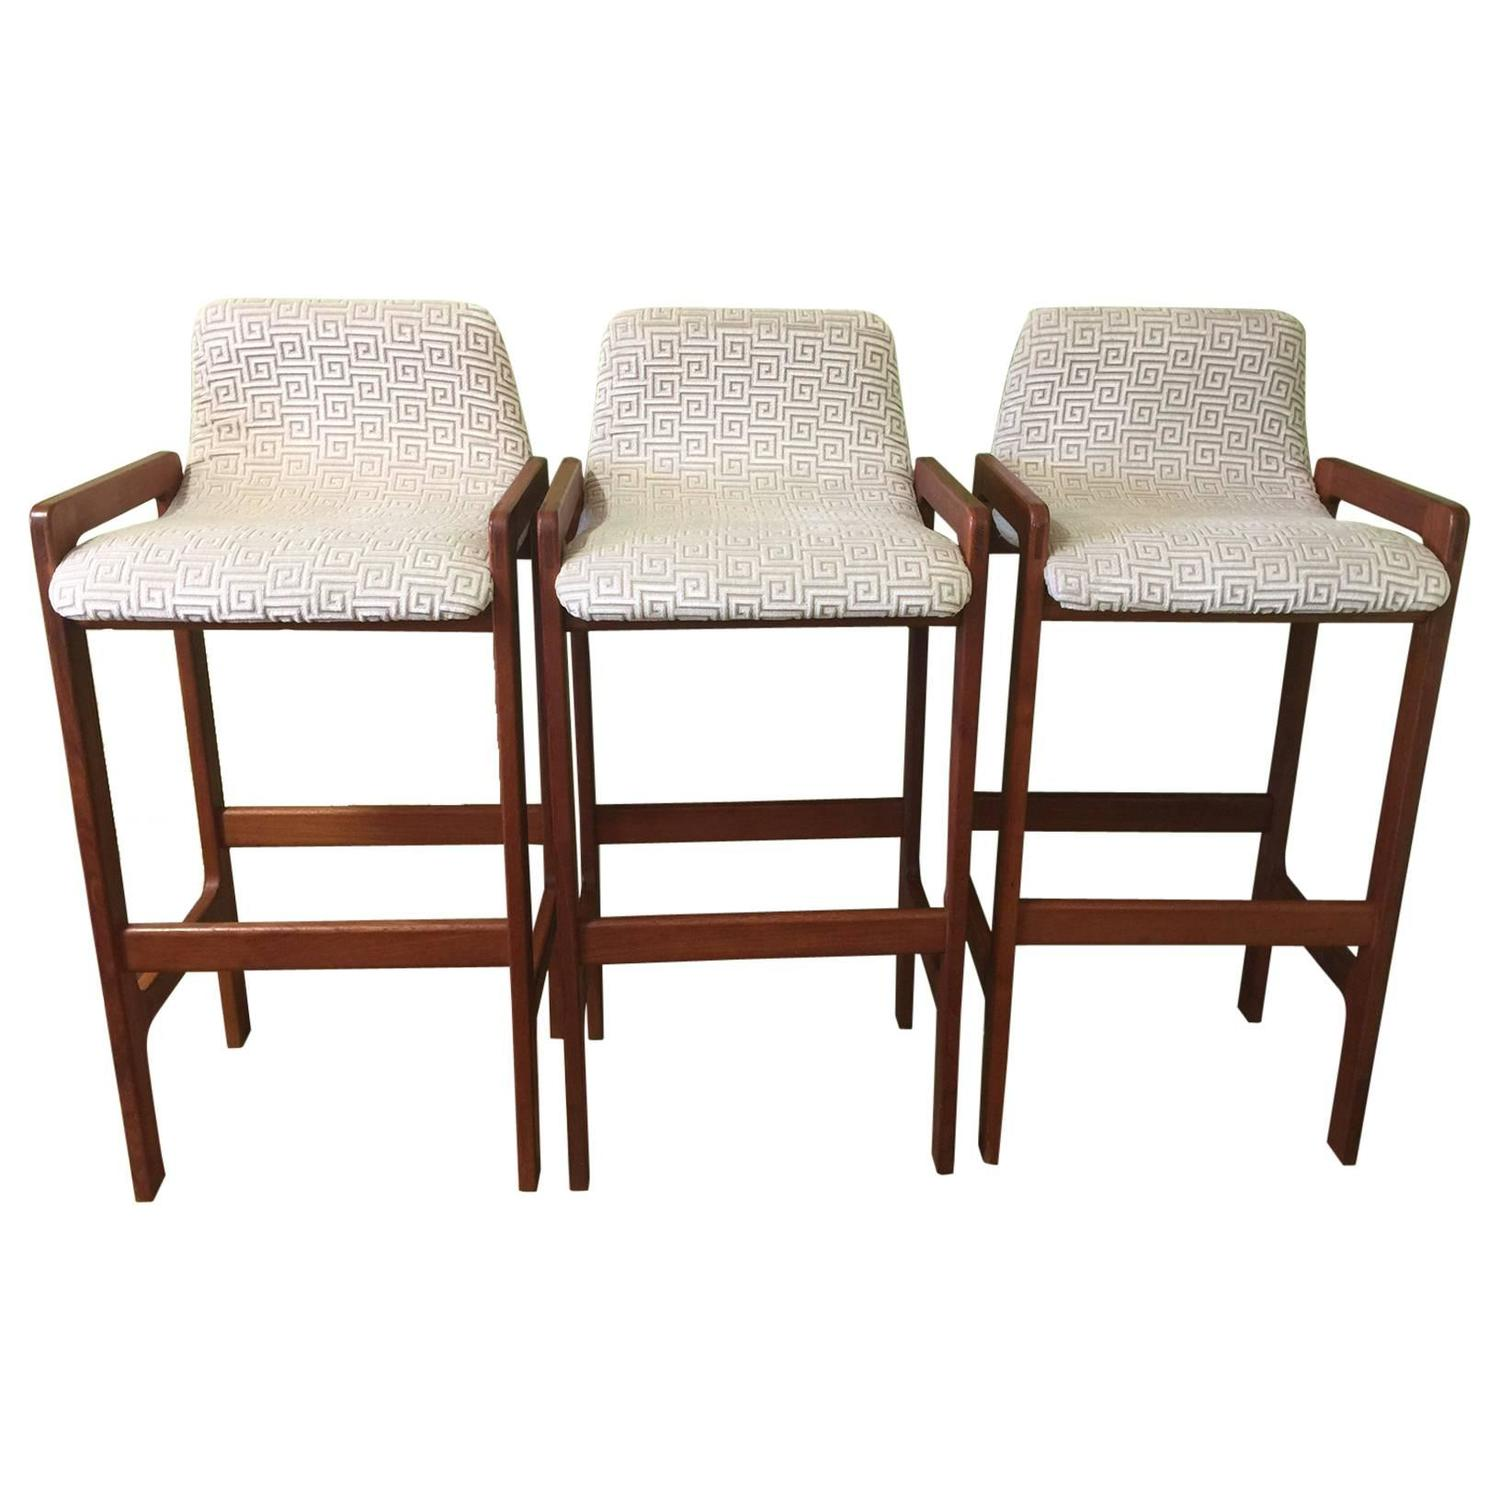 Dixie Mid Century Modern Barstools With Greek Key Upholstery Set Of Three At 1stdibs